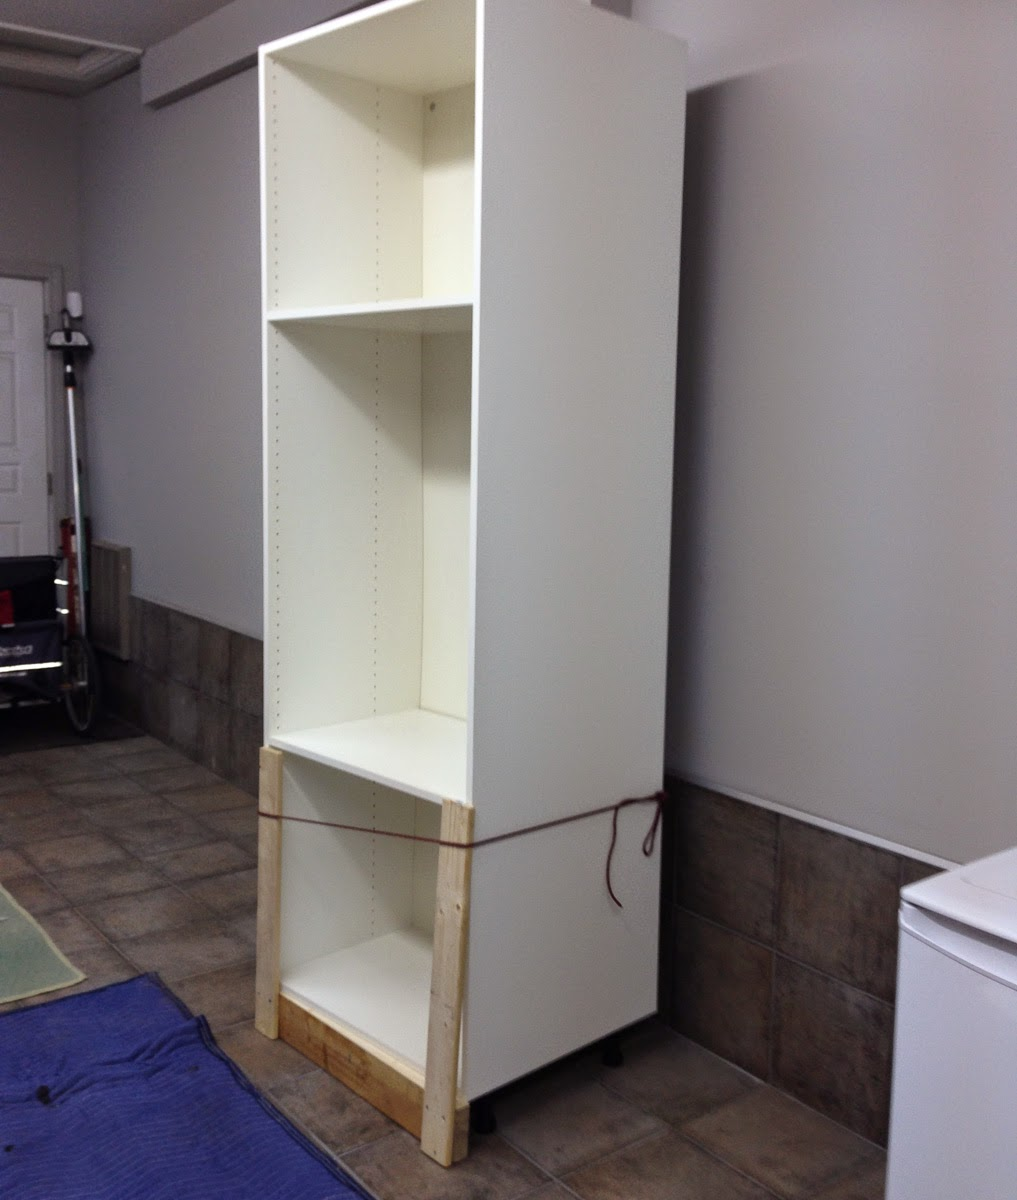 Jig For Tilting Wall Cabinets Vertical   You Wouldnu0027t Need This If You Had  A Second Person To Help You Lift These Vertically.